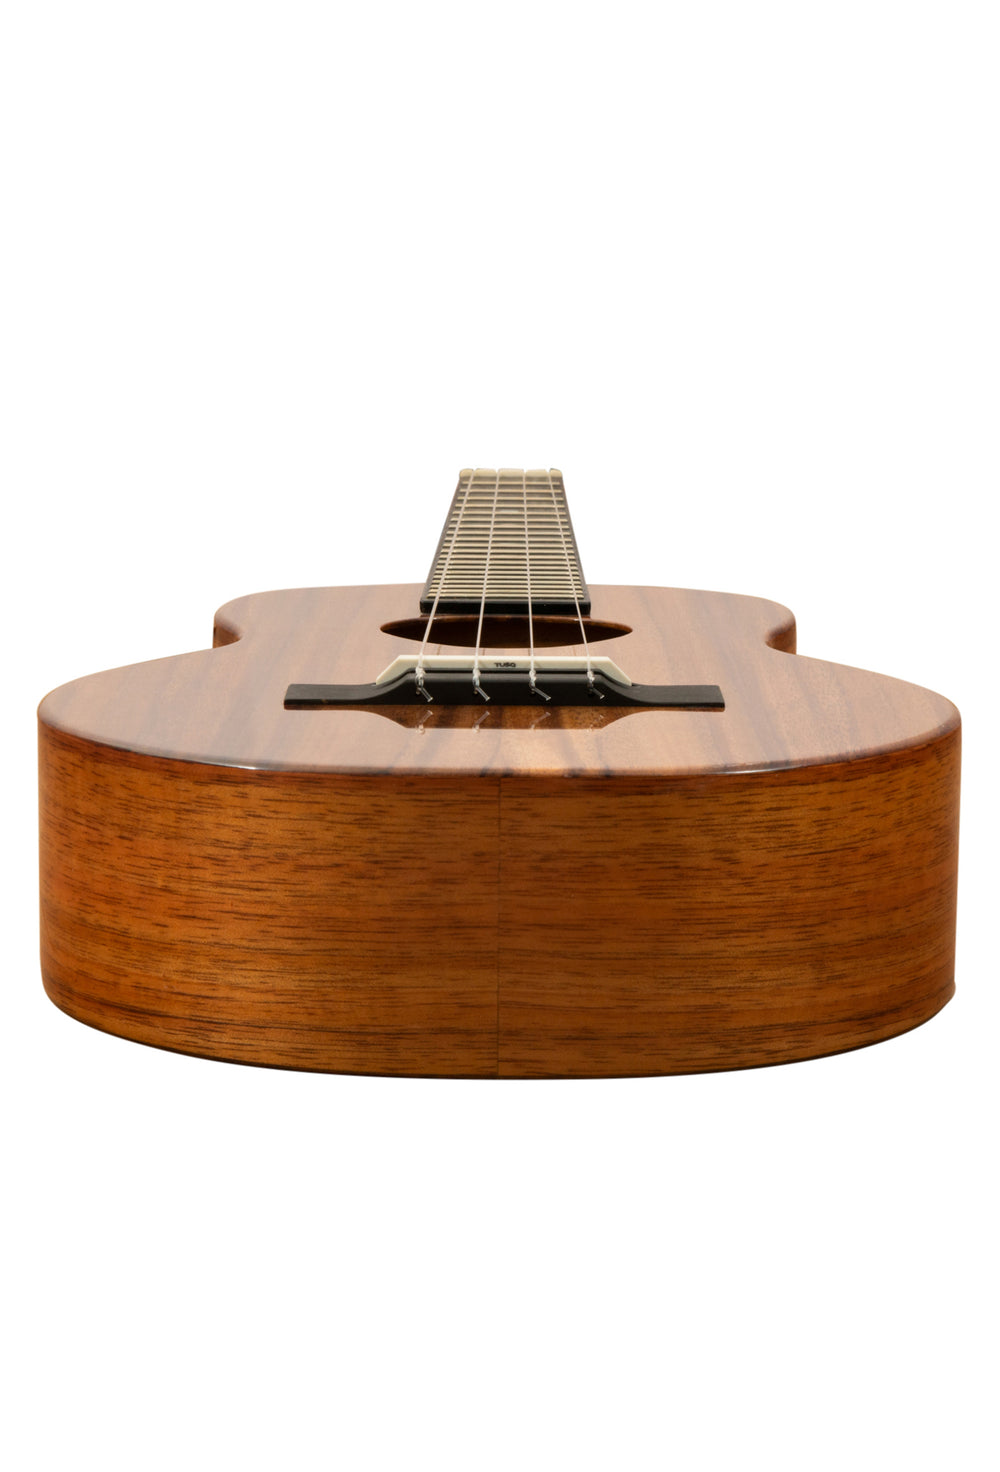 "KoAloha KTM-00 Tenor Ukulele Koa ""Tia"" Made in Hawaii"